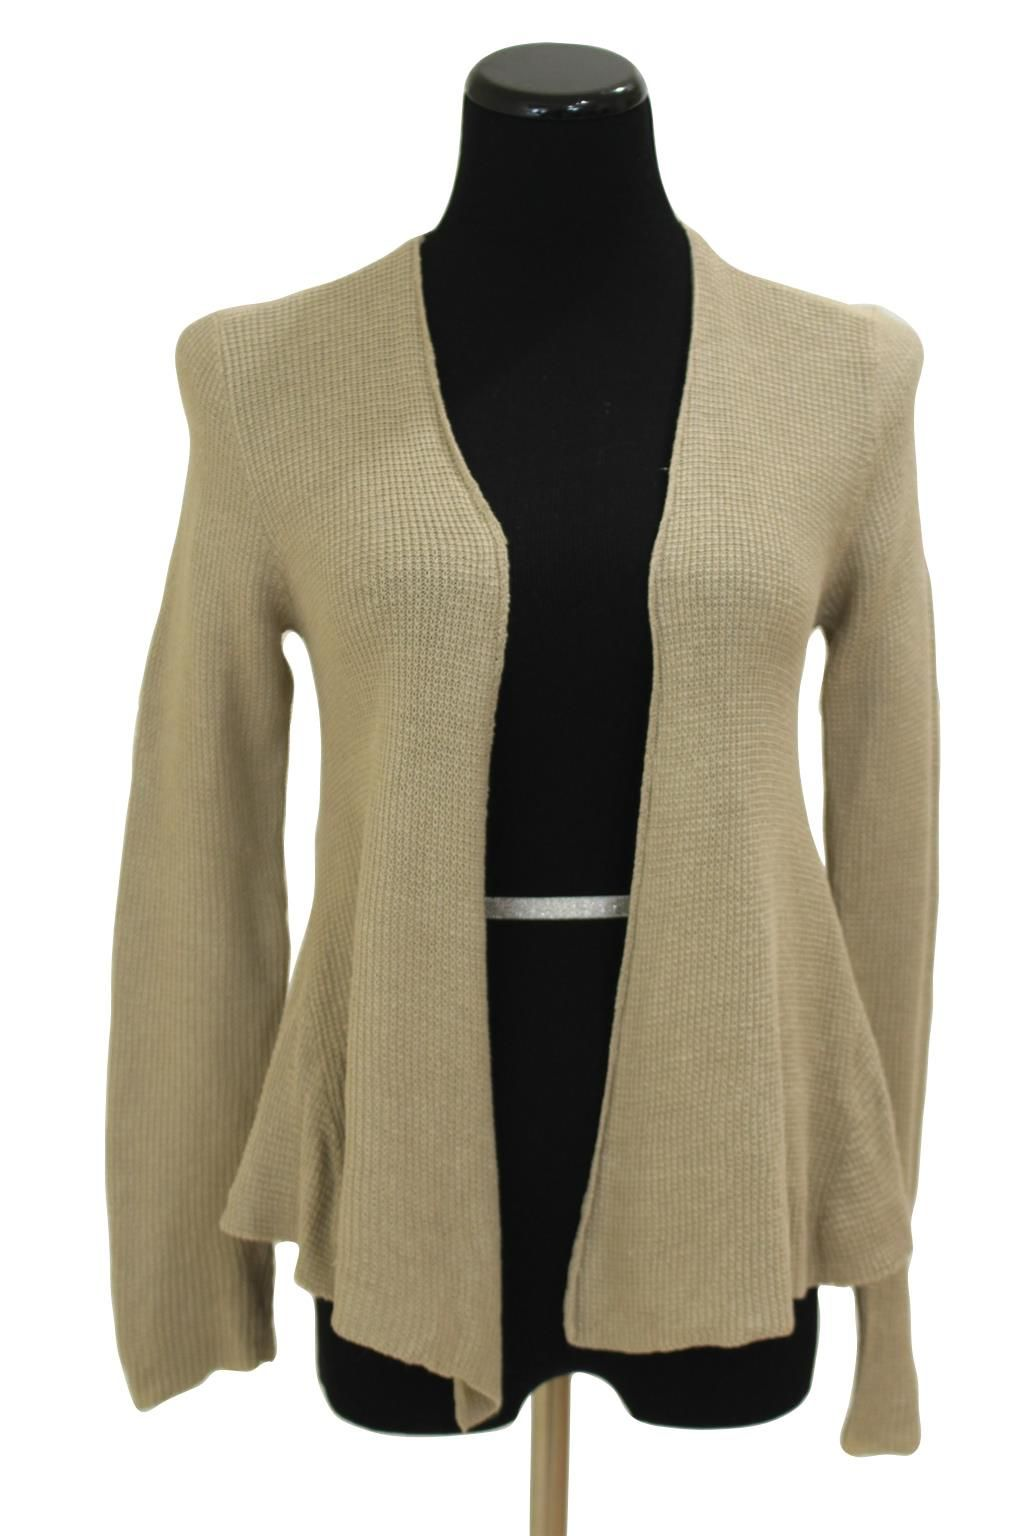 Eileen Fisher Beige Cascading Open Front Cardigan Sweater Size PP